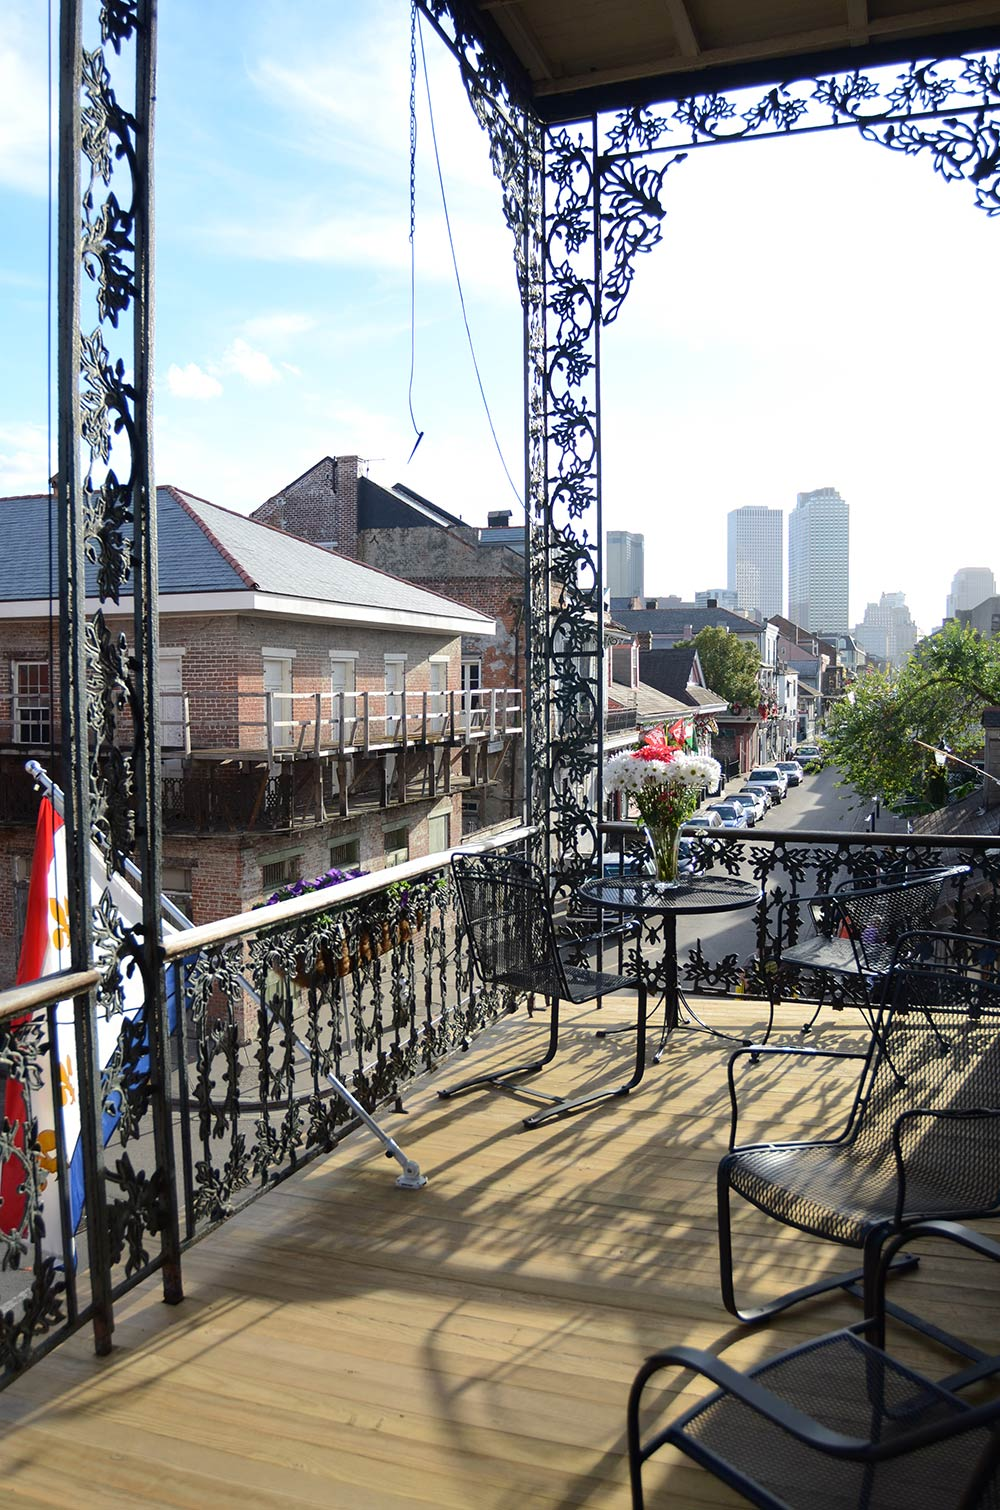 Where To Stay In New Orleans Best New Orleans Hotels